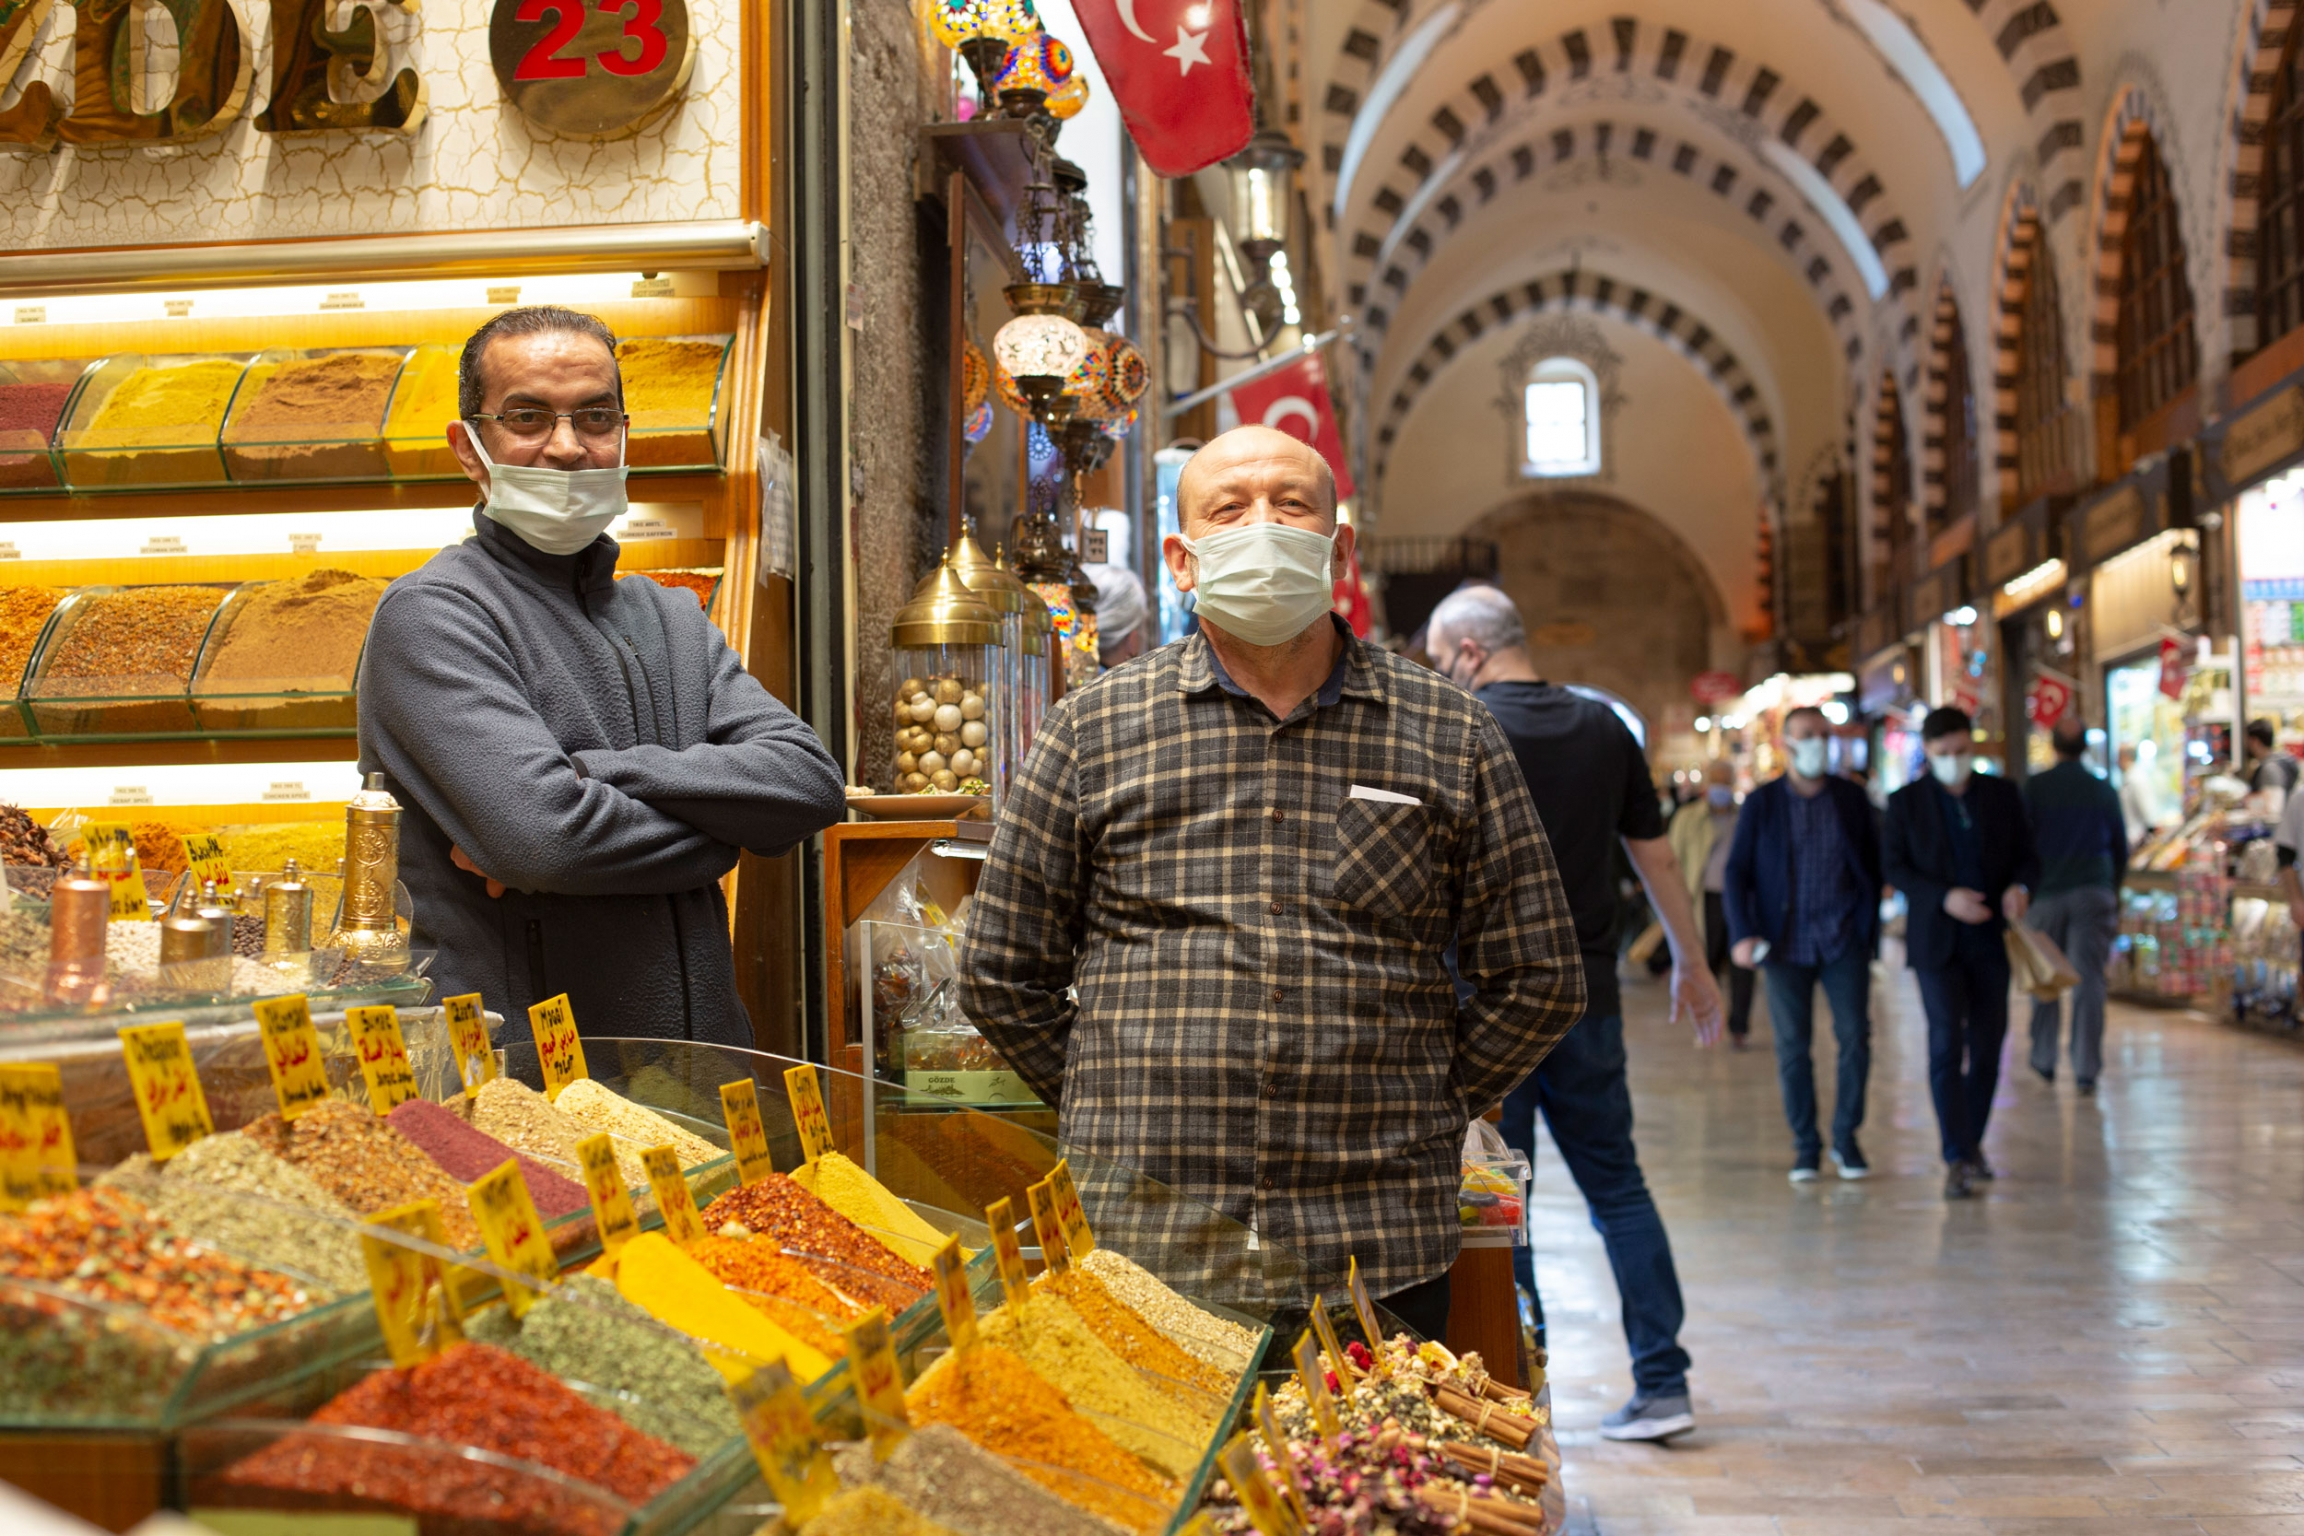 Two men are shown wearing face masks and standing next to a large display of sweets.